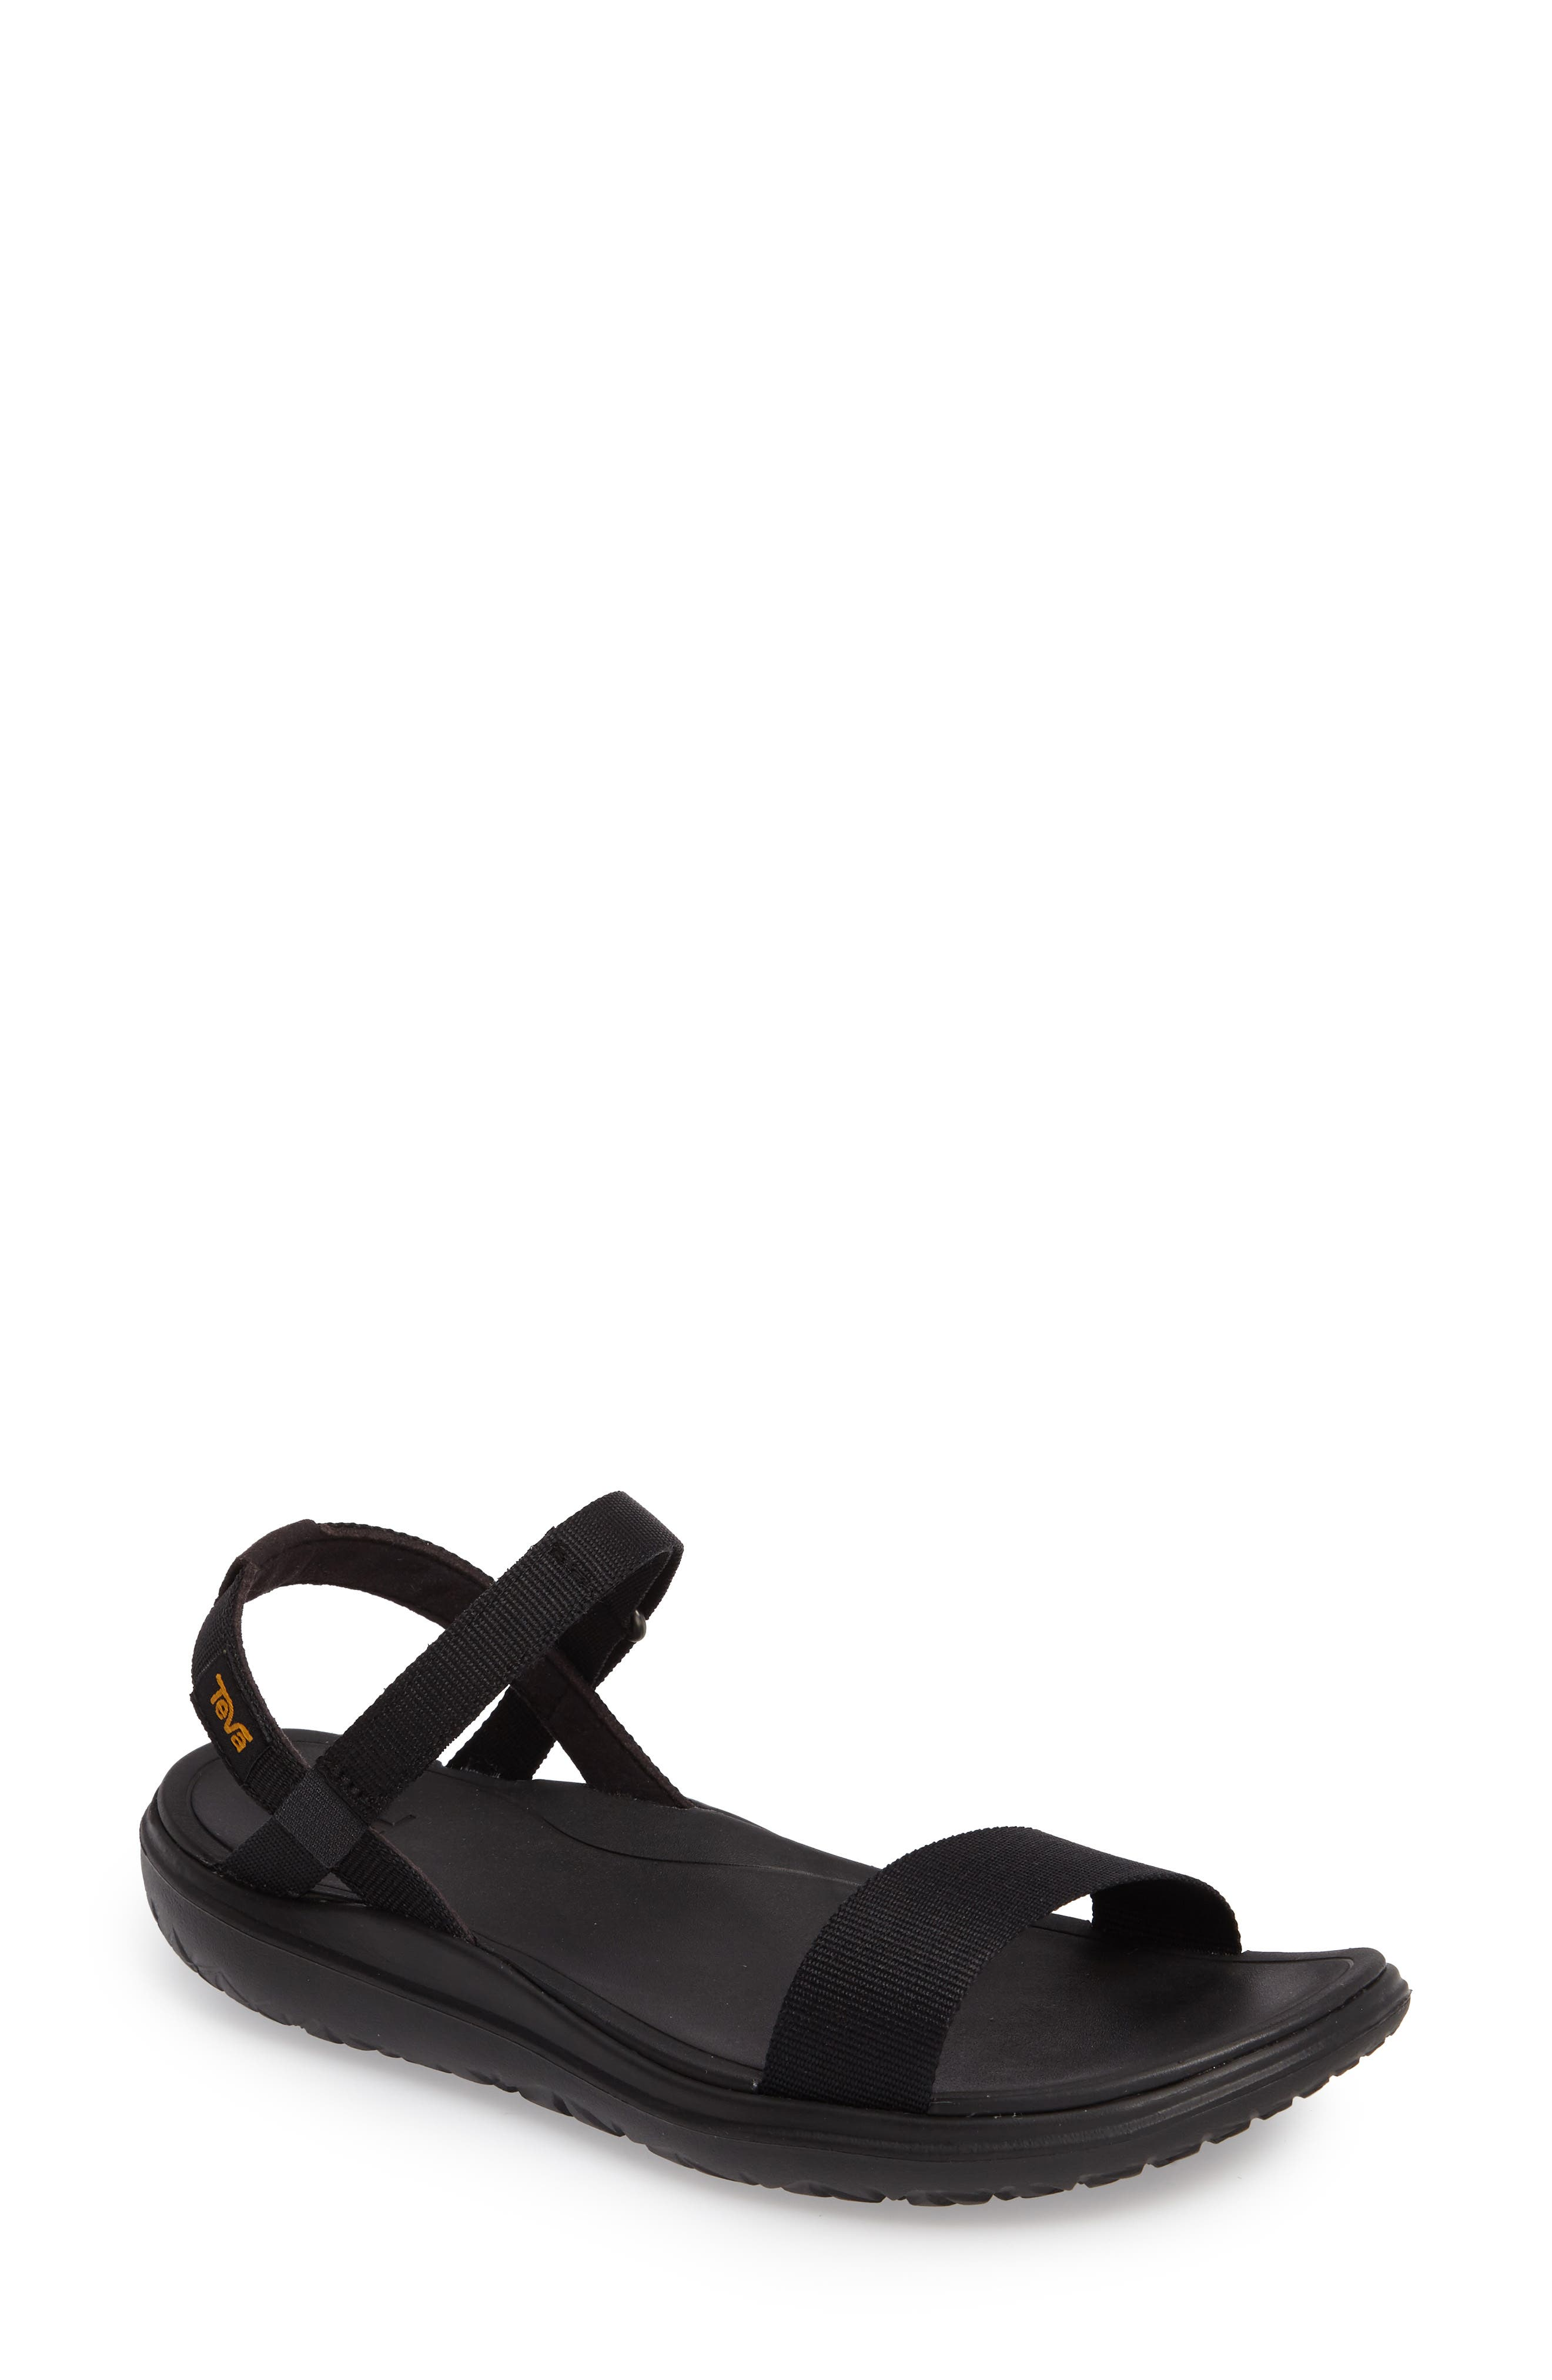 Terra Float Nova Sandal,                             Main thumbnail 1, color,                             Black Fabric